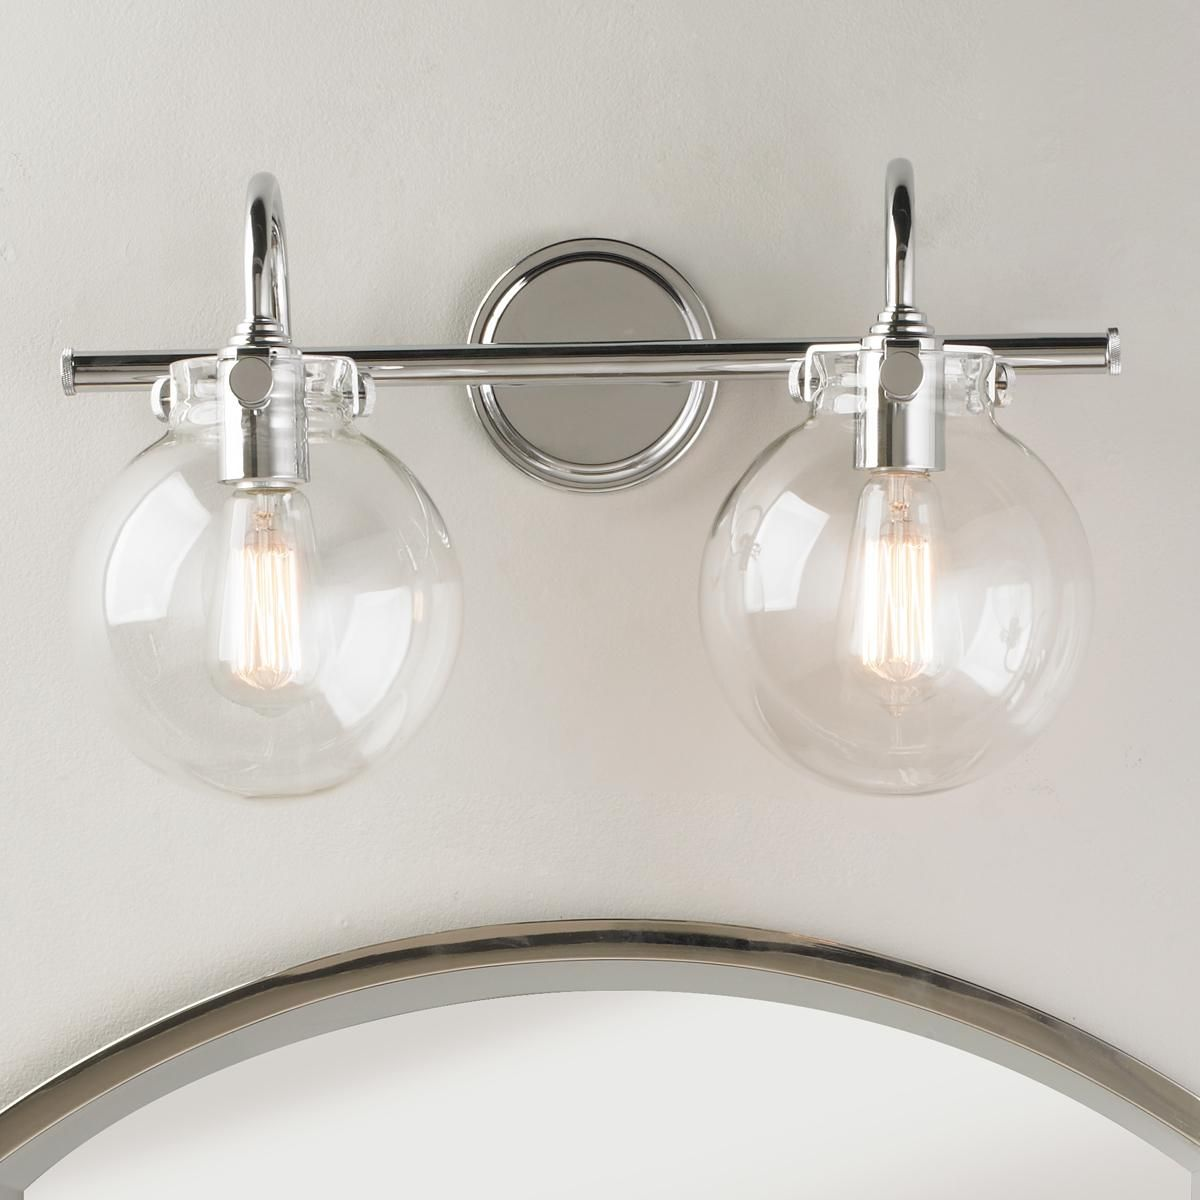 Retro Glass Globe Bath Light - 2 Light | Bath light, Globe and Chrome